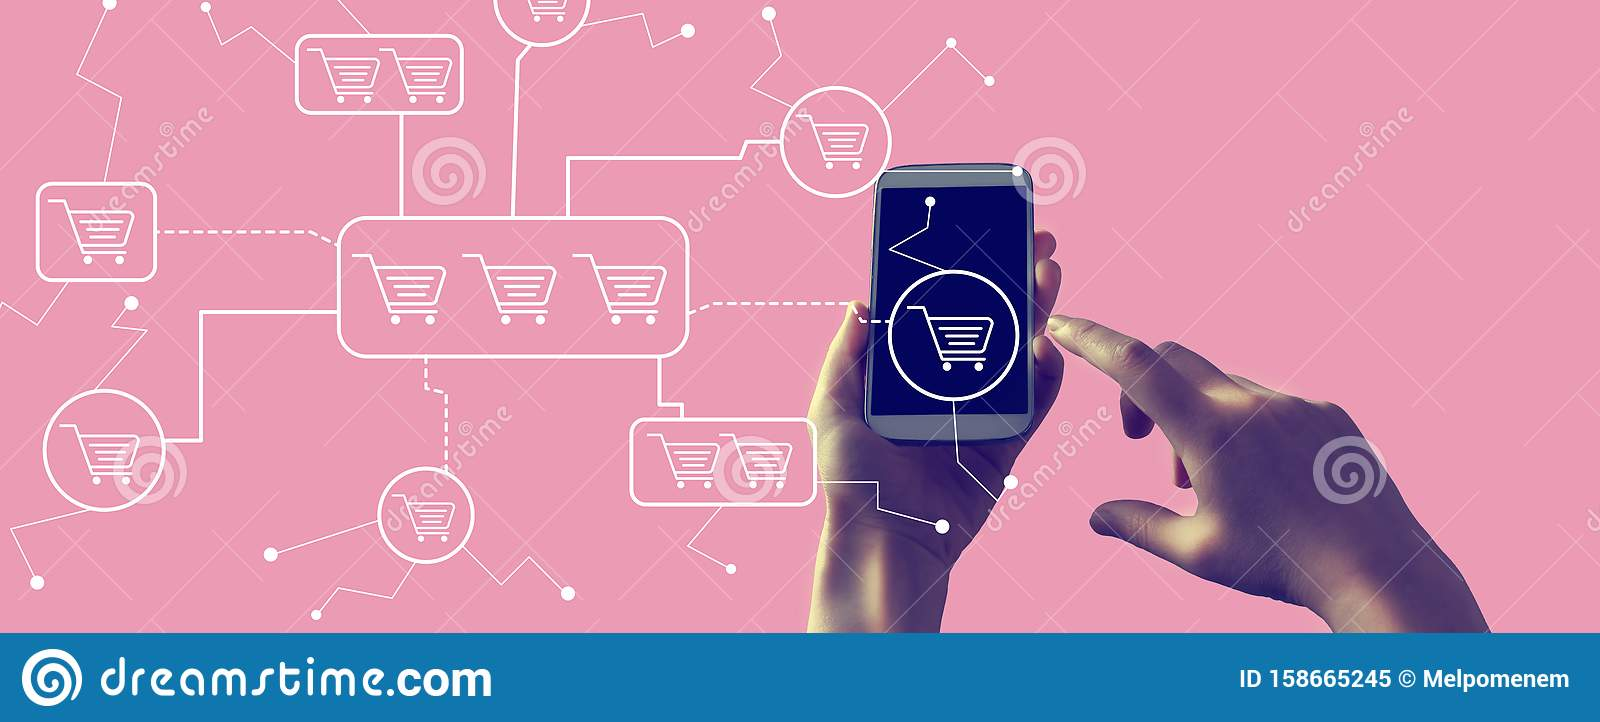 Online shopping theme with smartphone